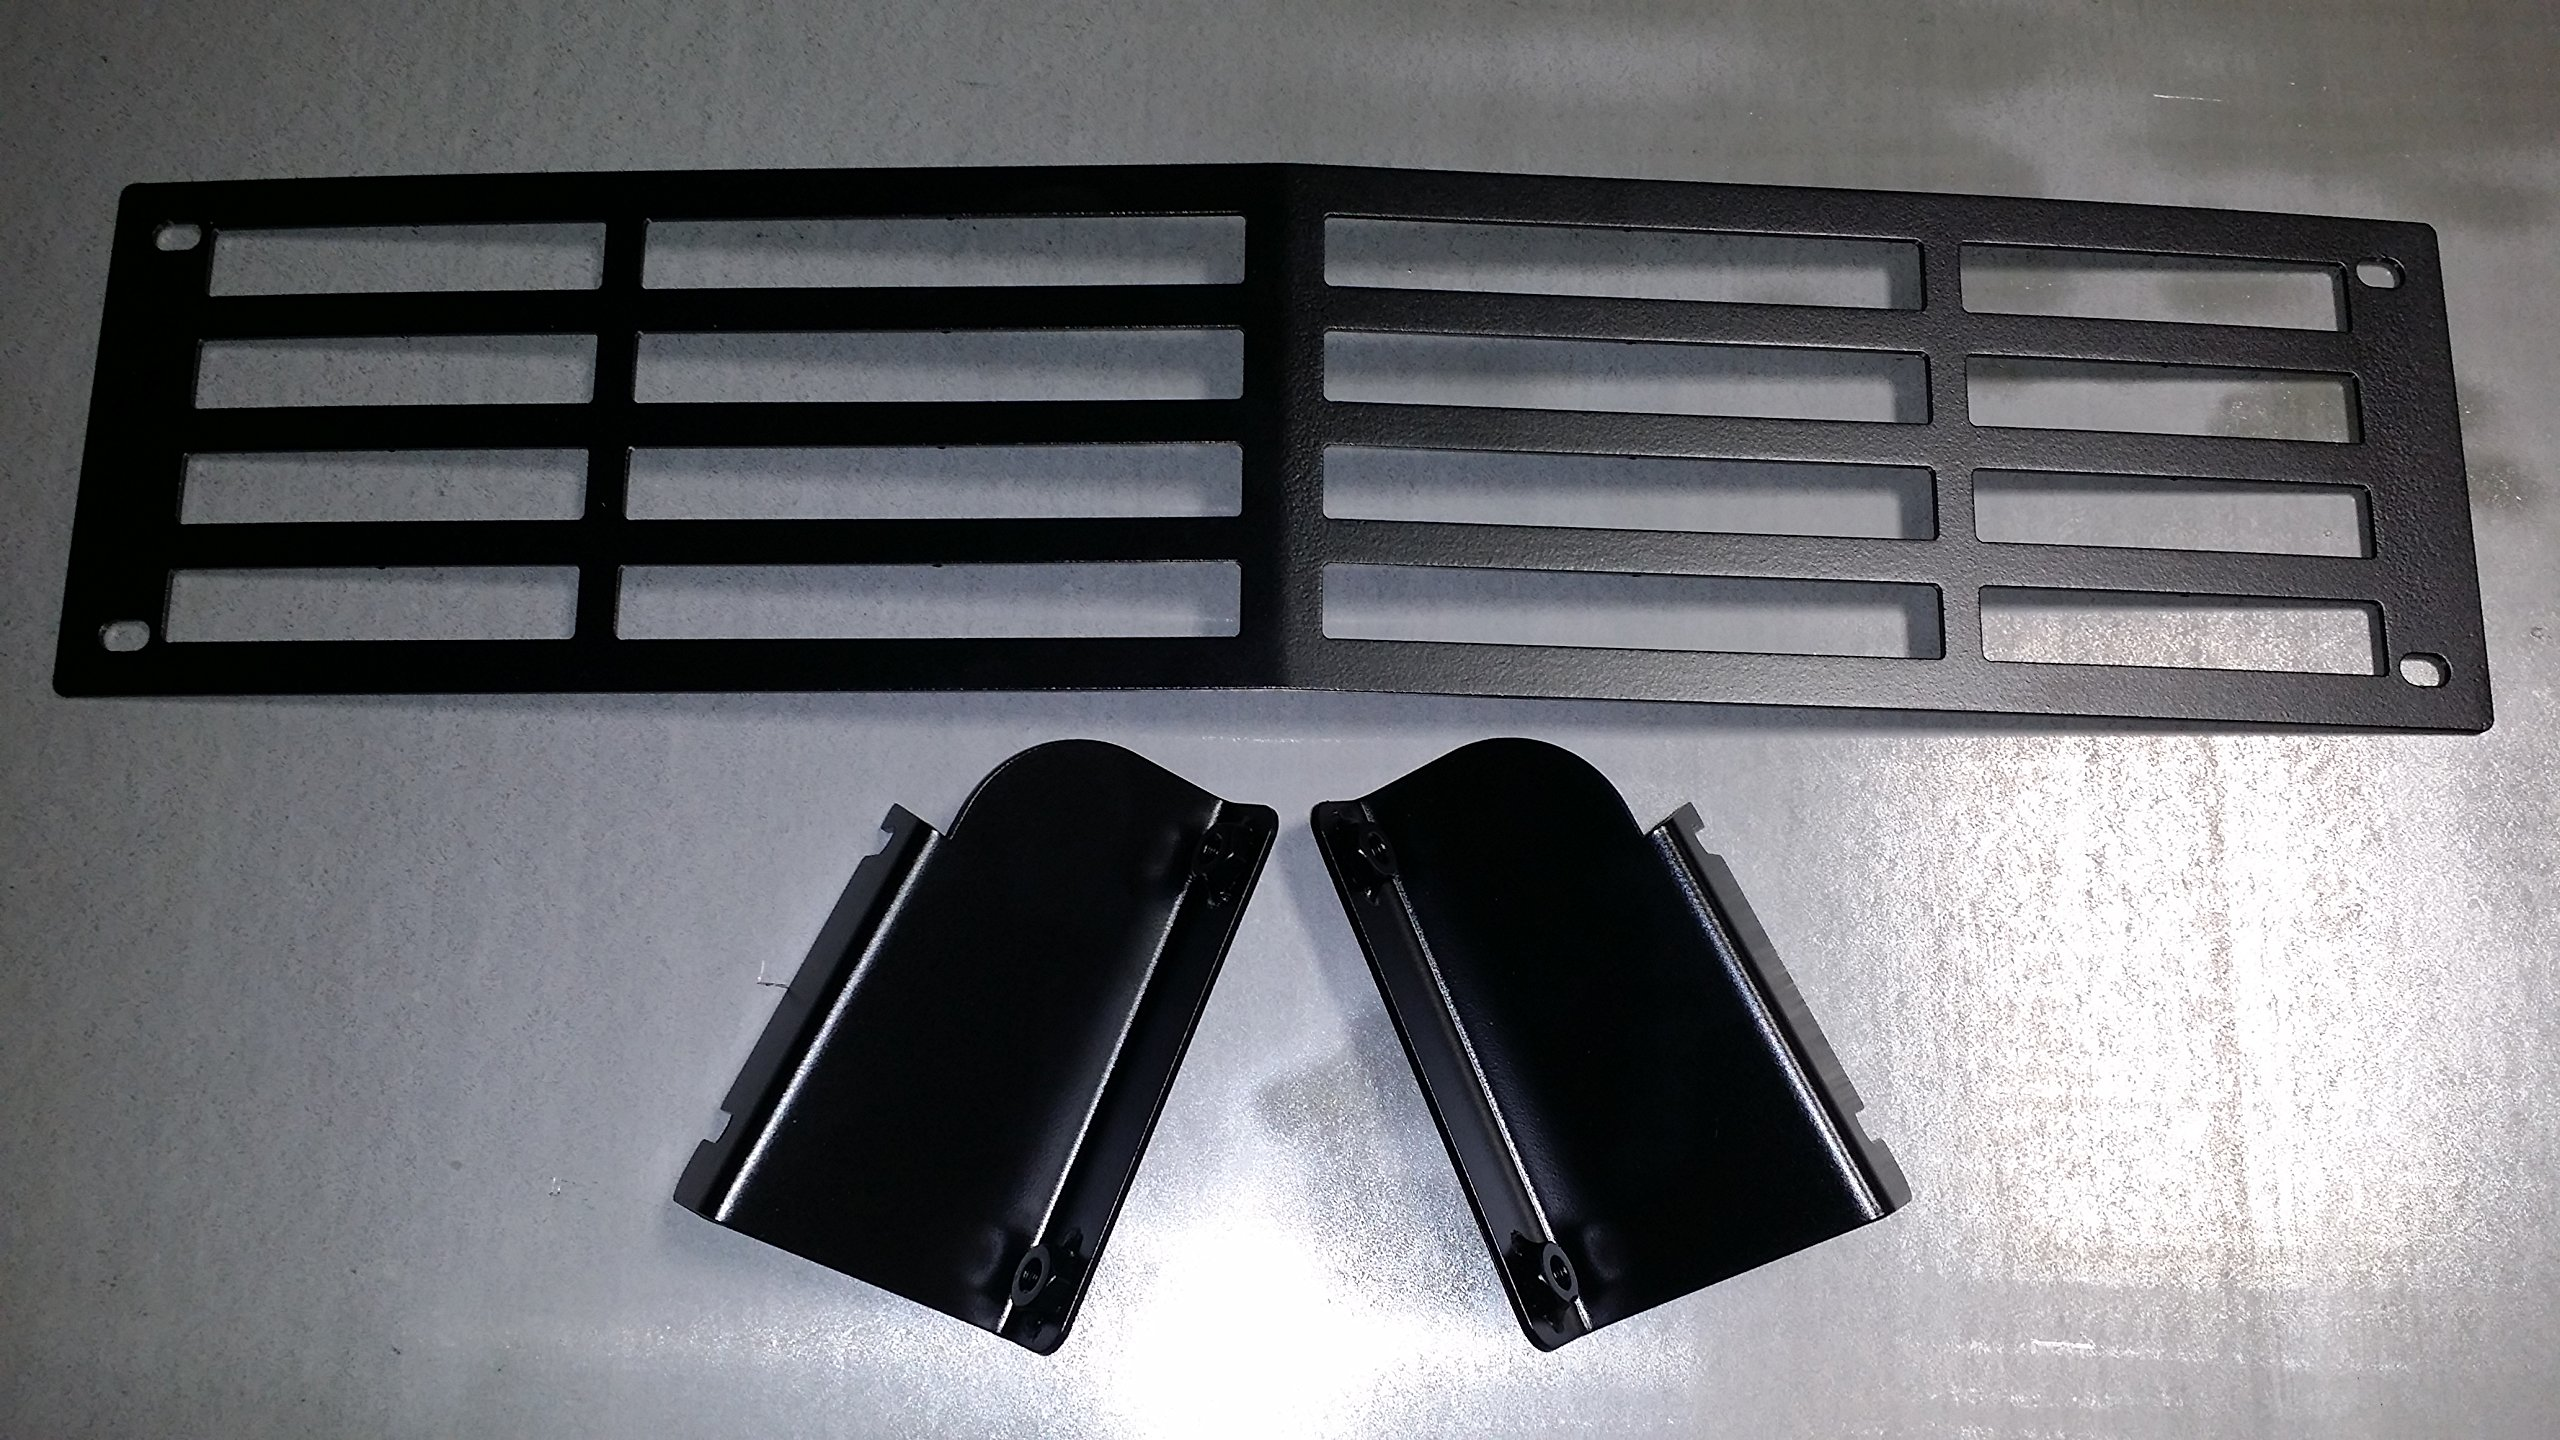 Mountains2Metal 2015-2019 Chevy Silverado 2500 3500 HD Stainless Steel Powder Coated Black Bumper Grille Insert